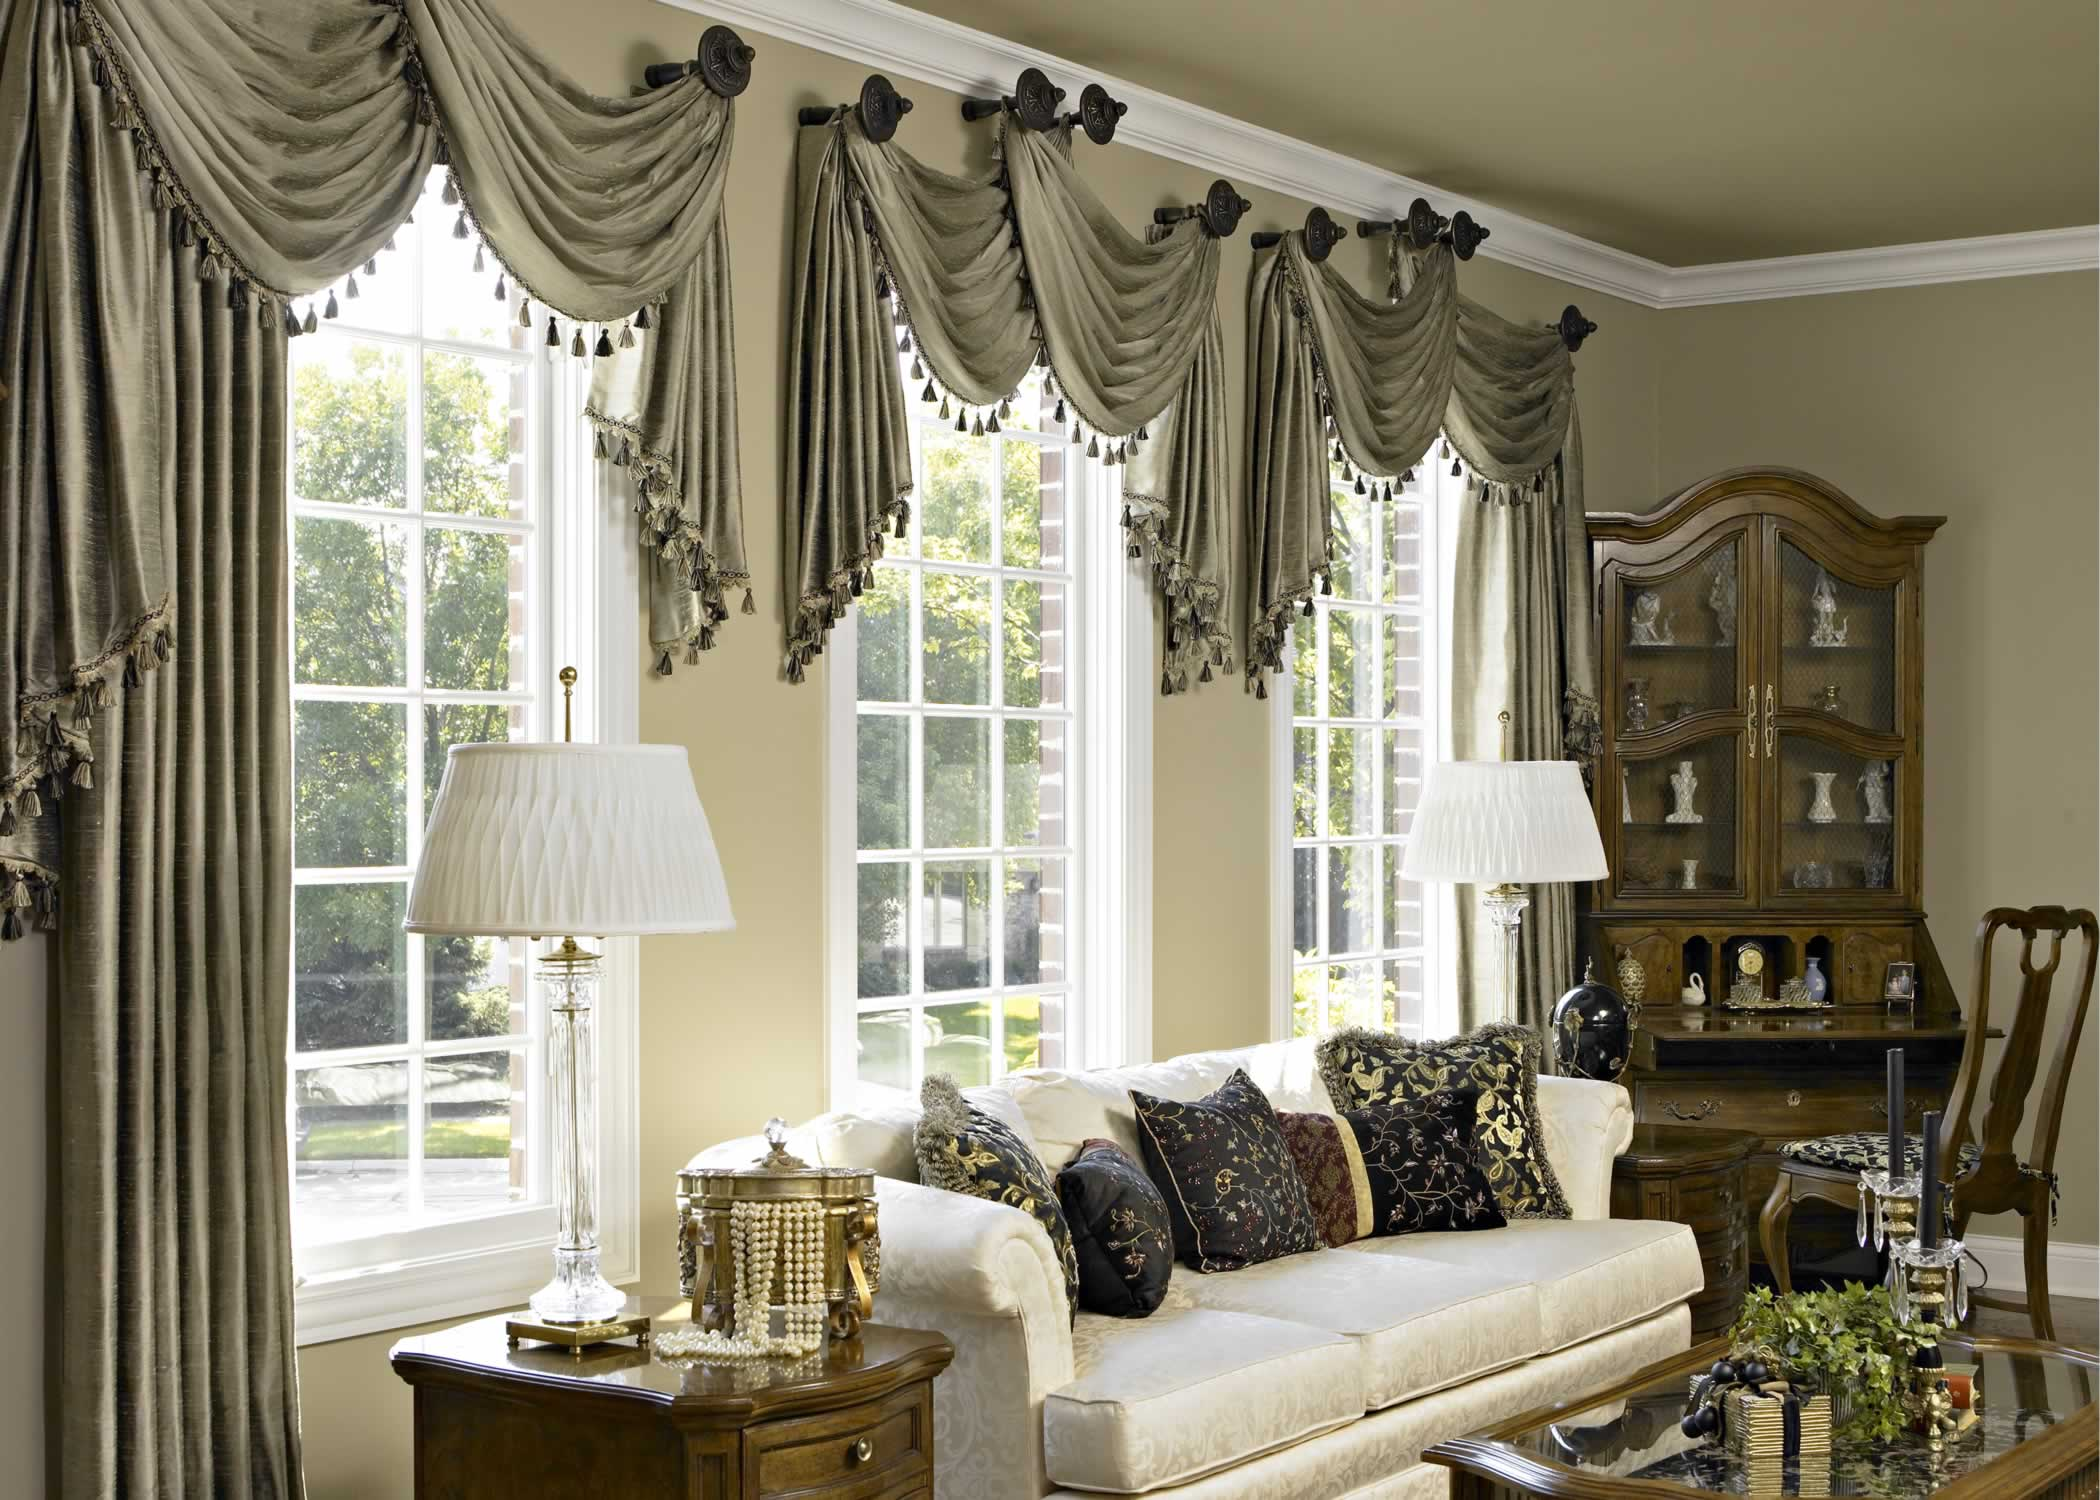 luxury living room with window treatment ideas - Window Treatment Design Ideas